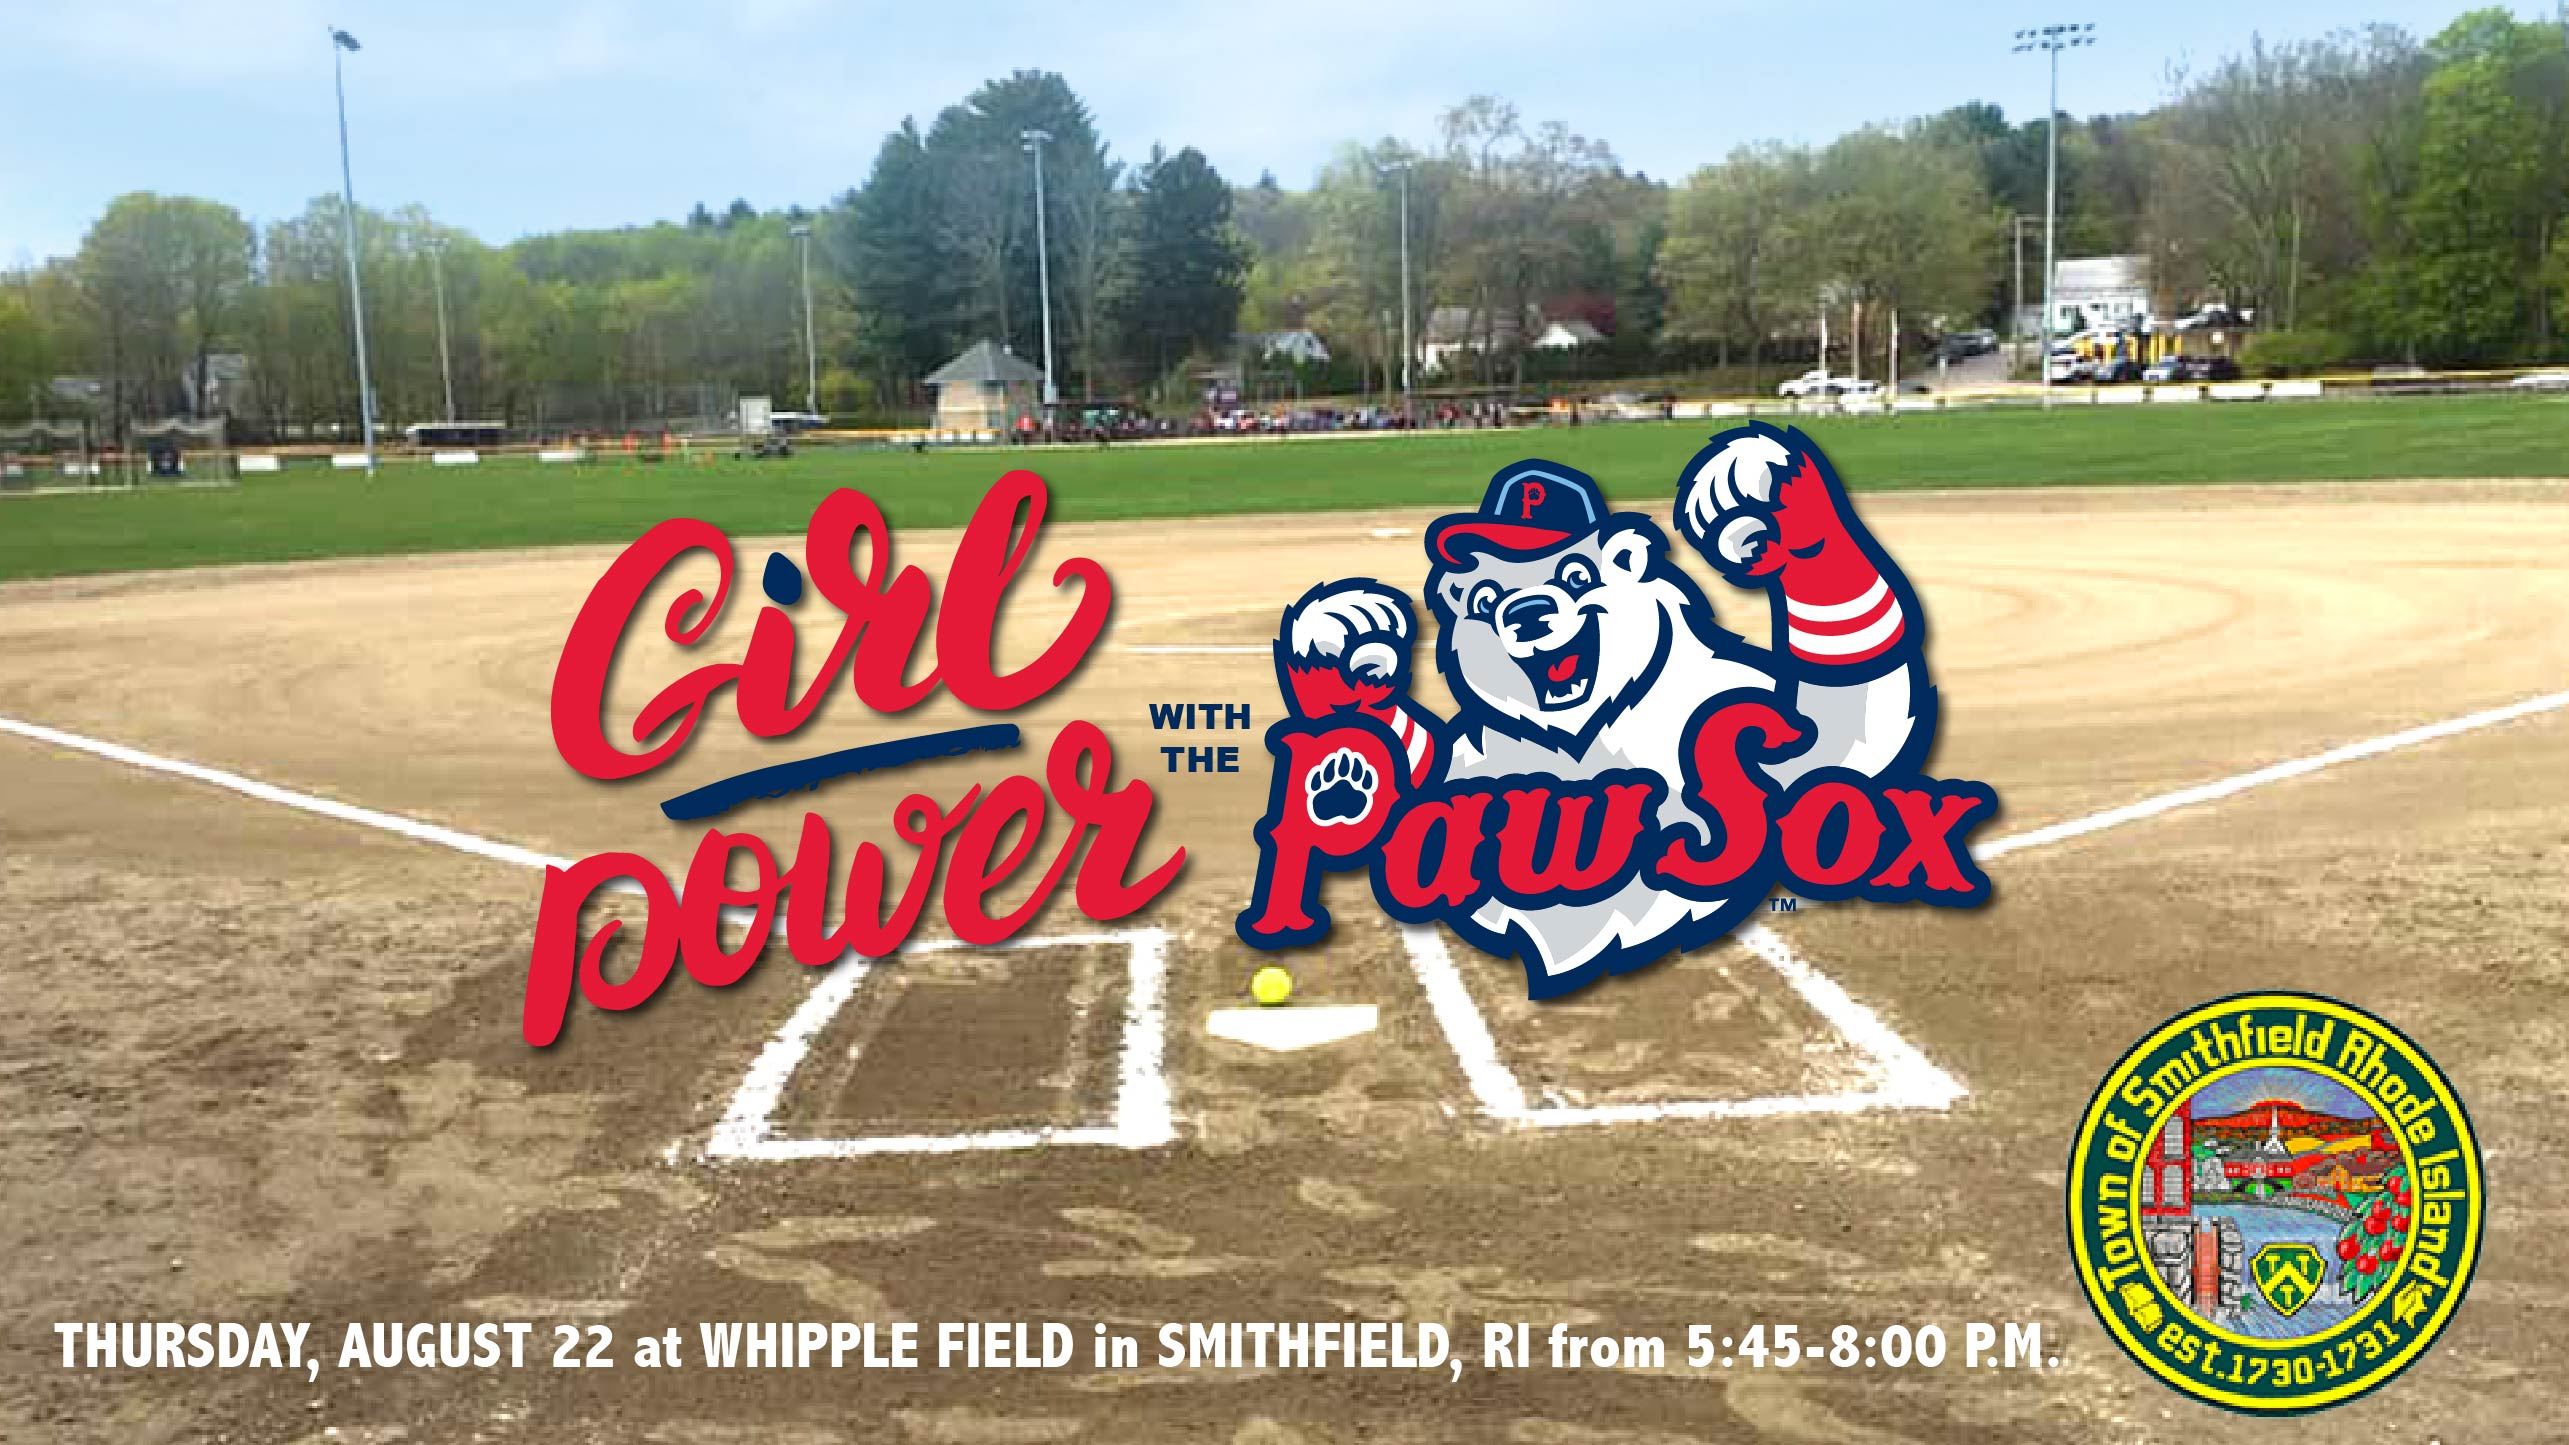 Girl Power with the PawSox at Whipple Field Thursday, August 22, 2019 at 5:30 PM – 8 PM